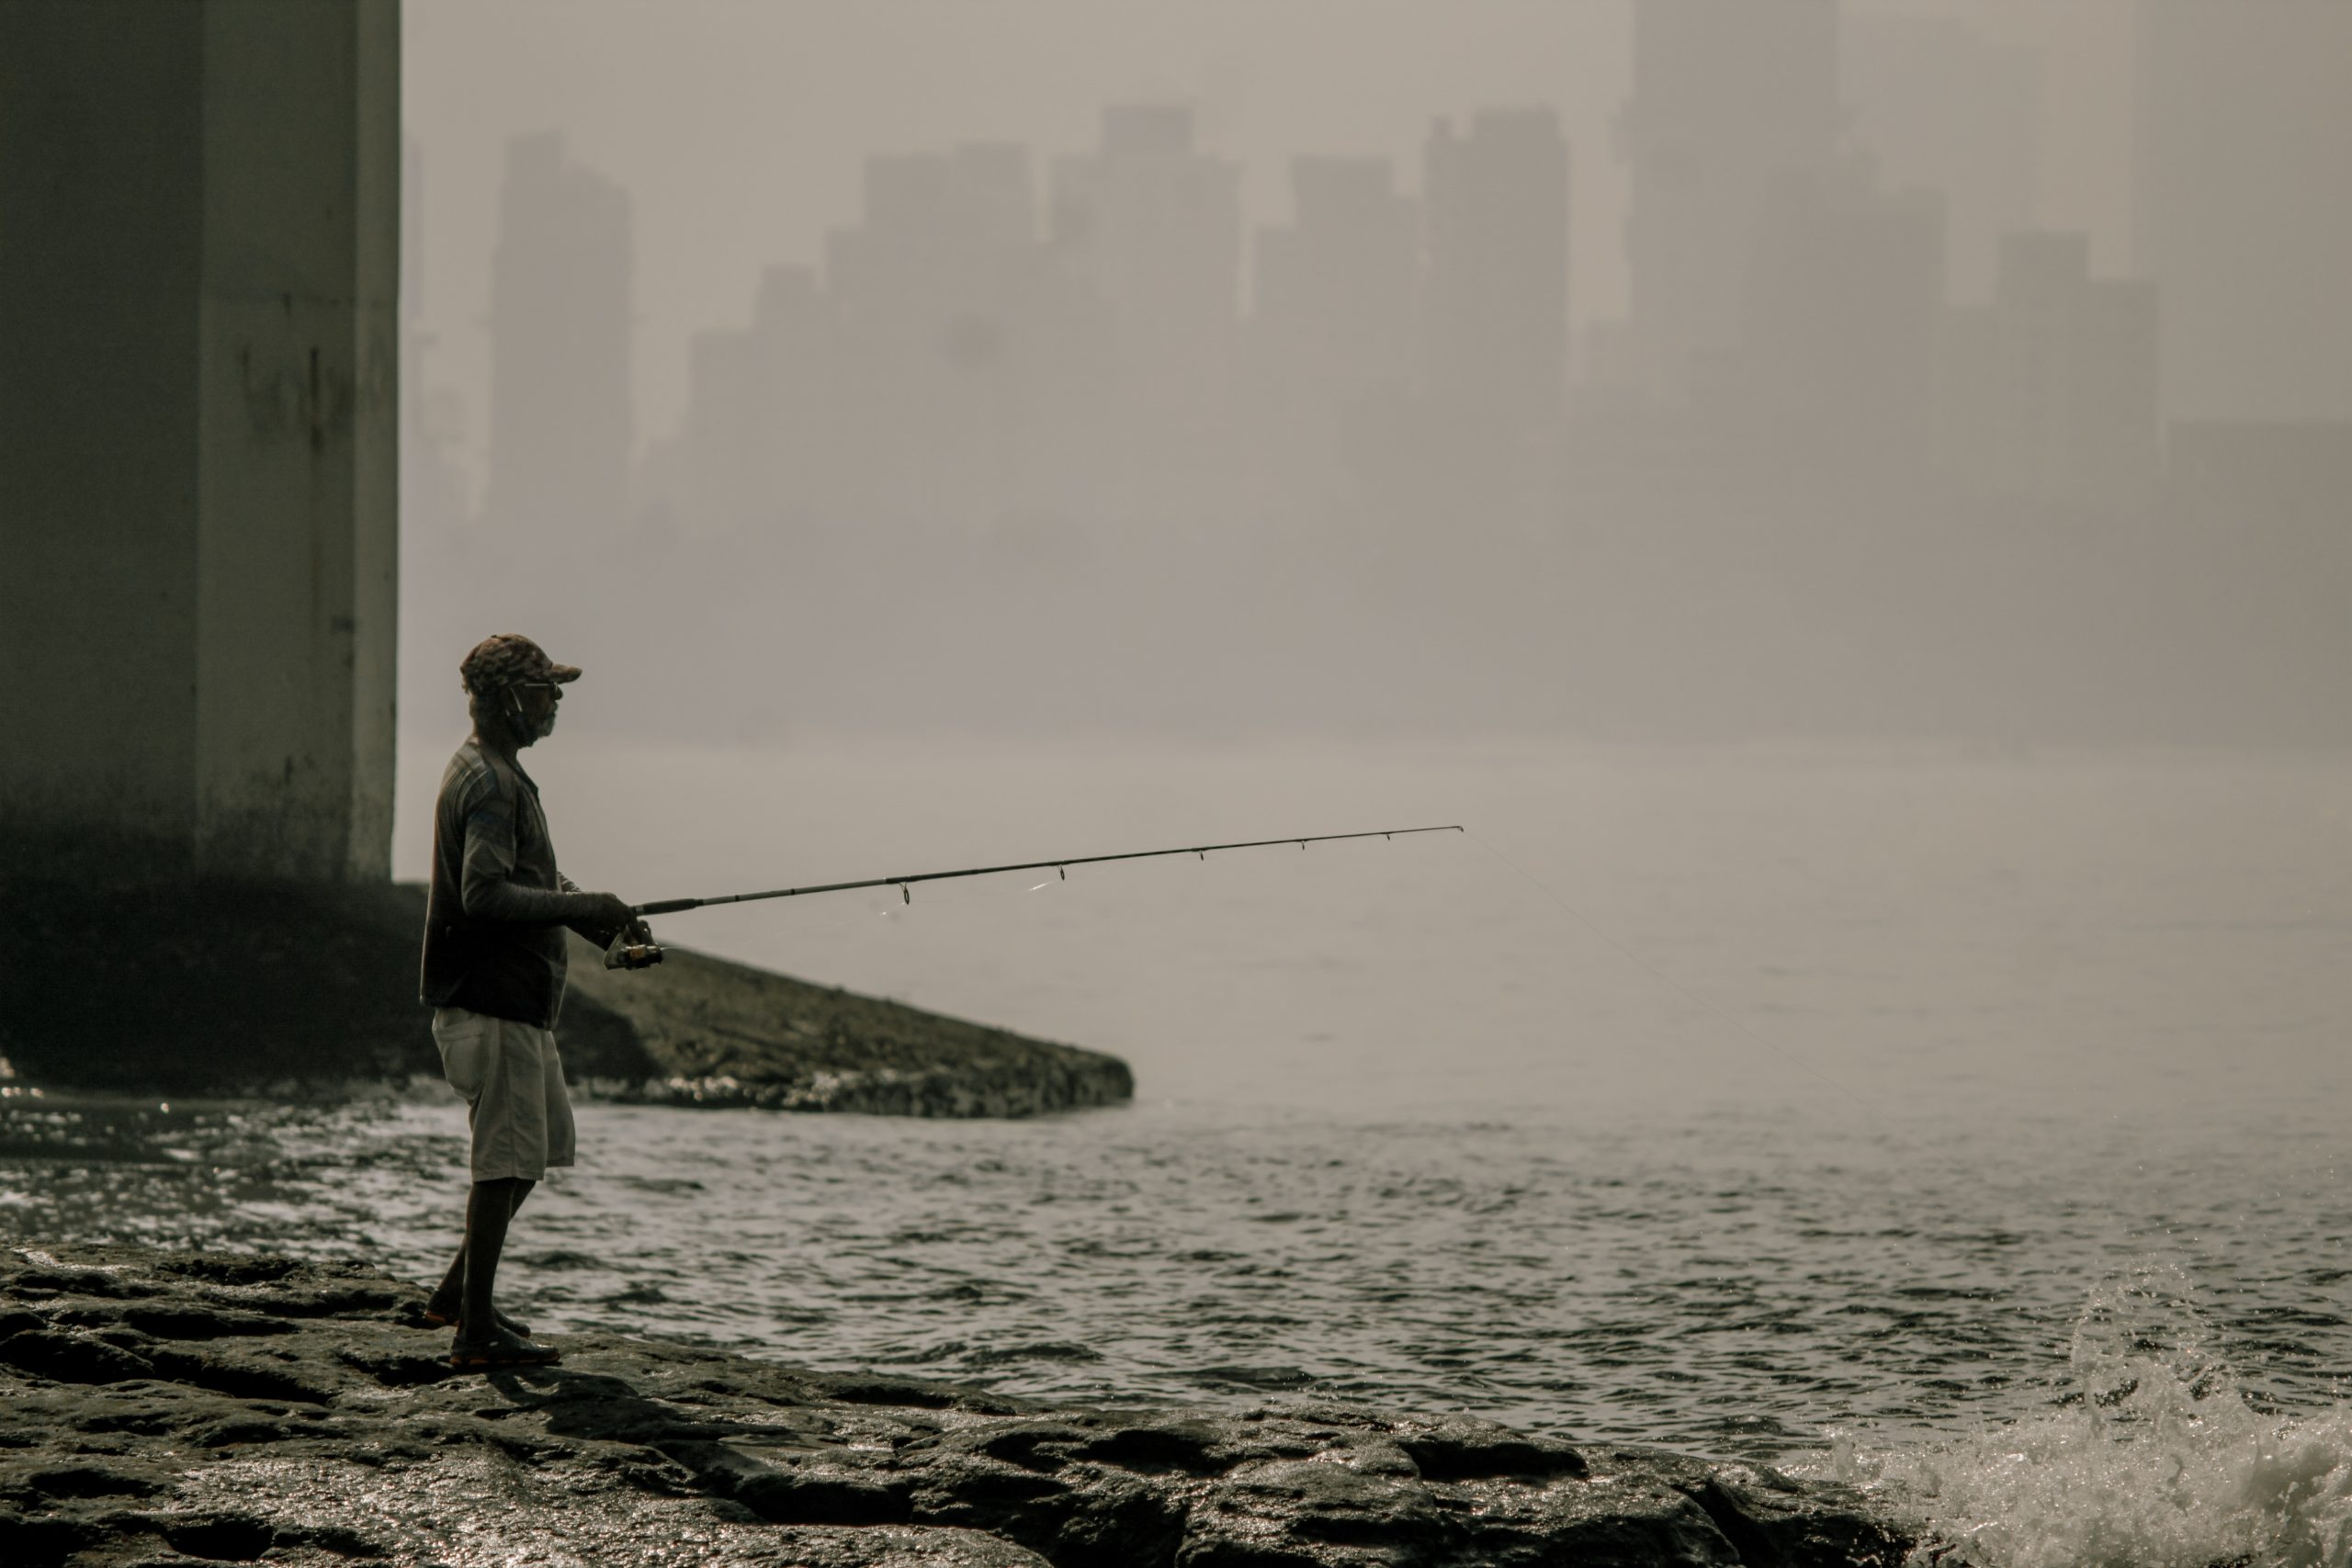 Man fishing in the Sea